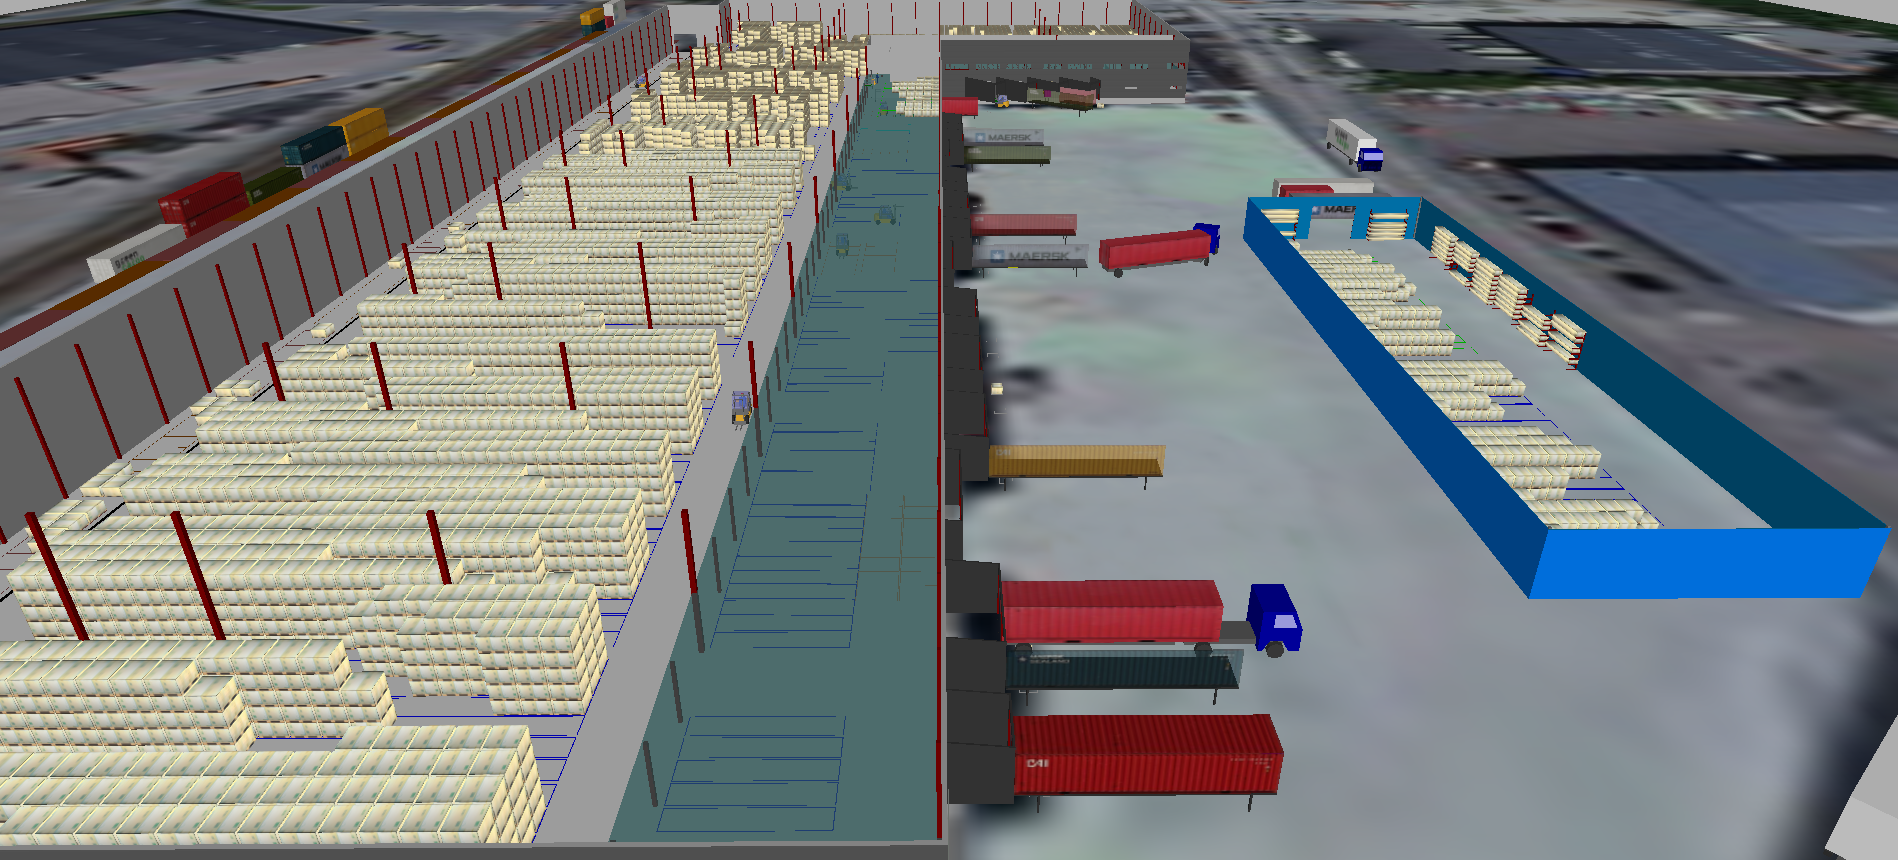 Sim Logistics - 3D Simulation